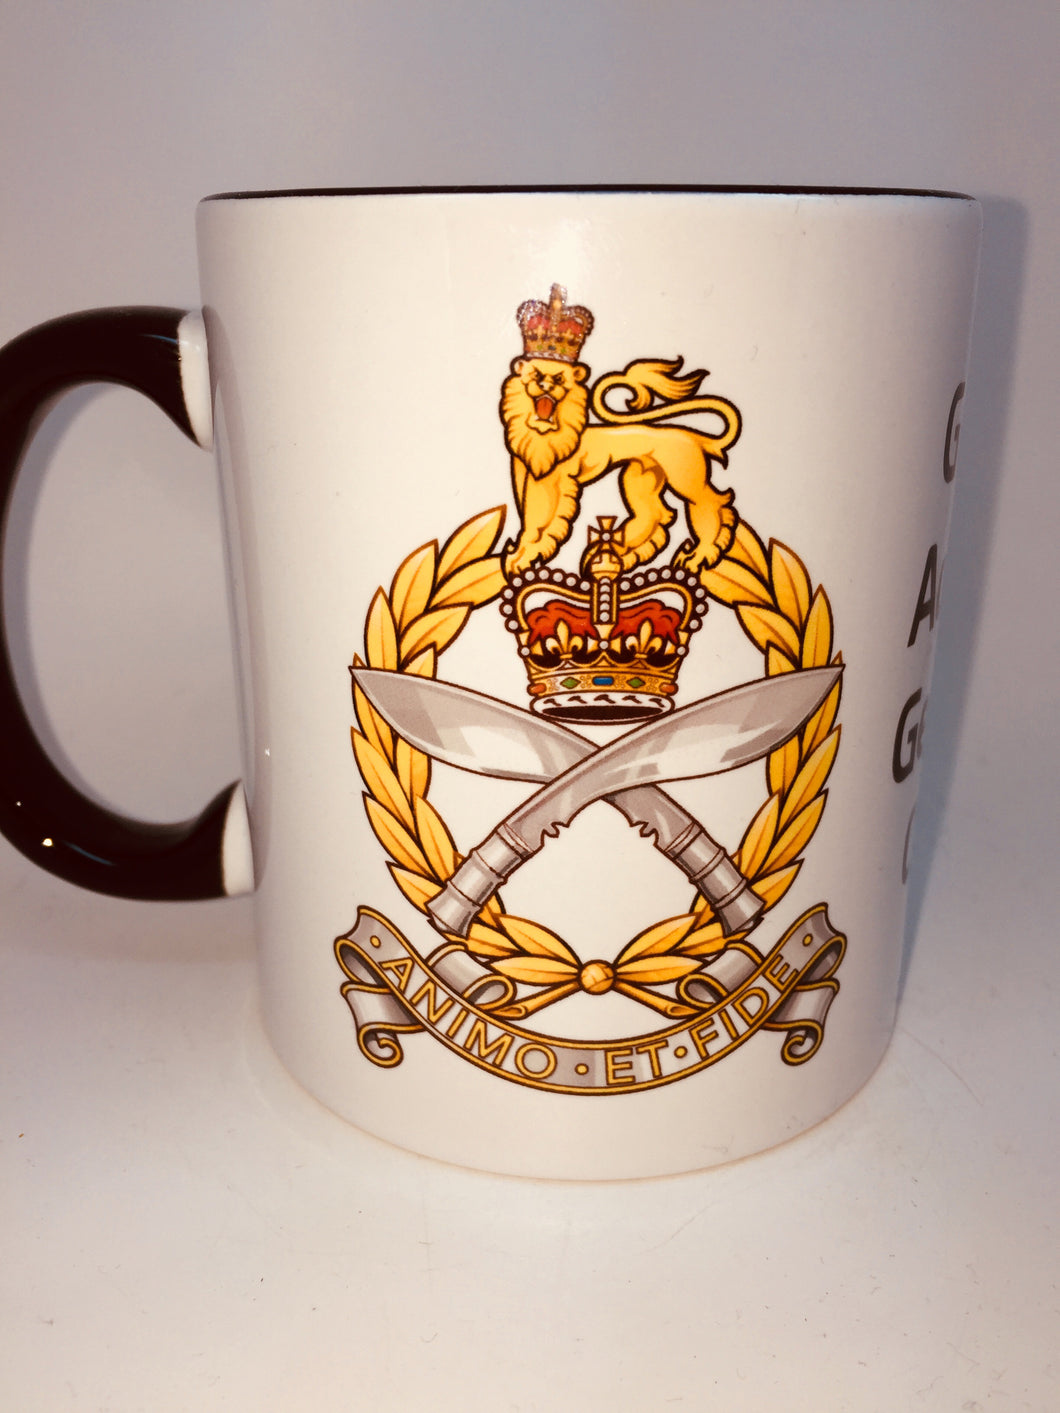 Gurkha Adjutants Generals Corps Coffee/Travel Mug